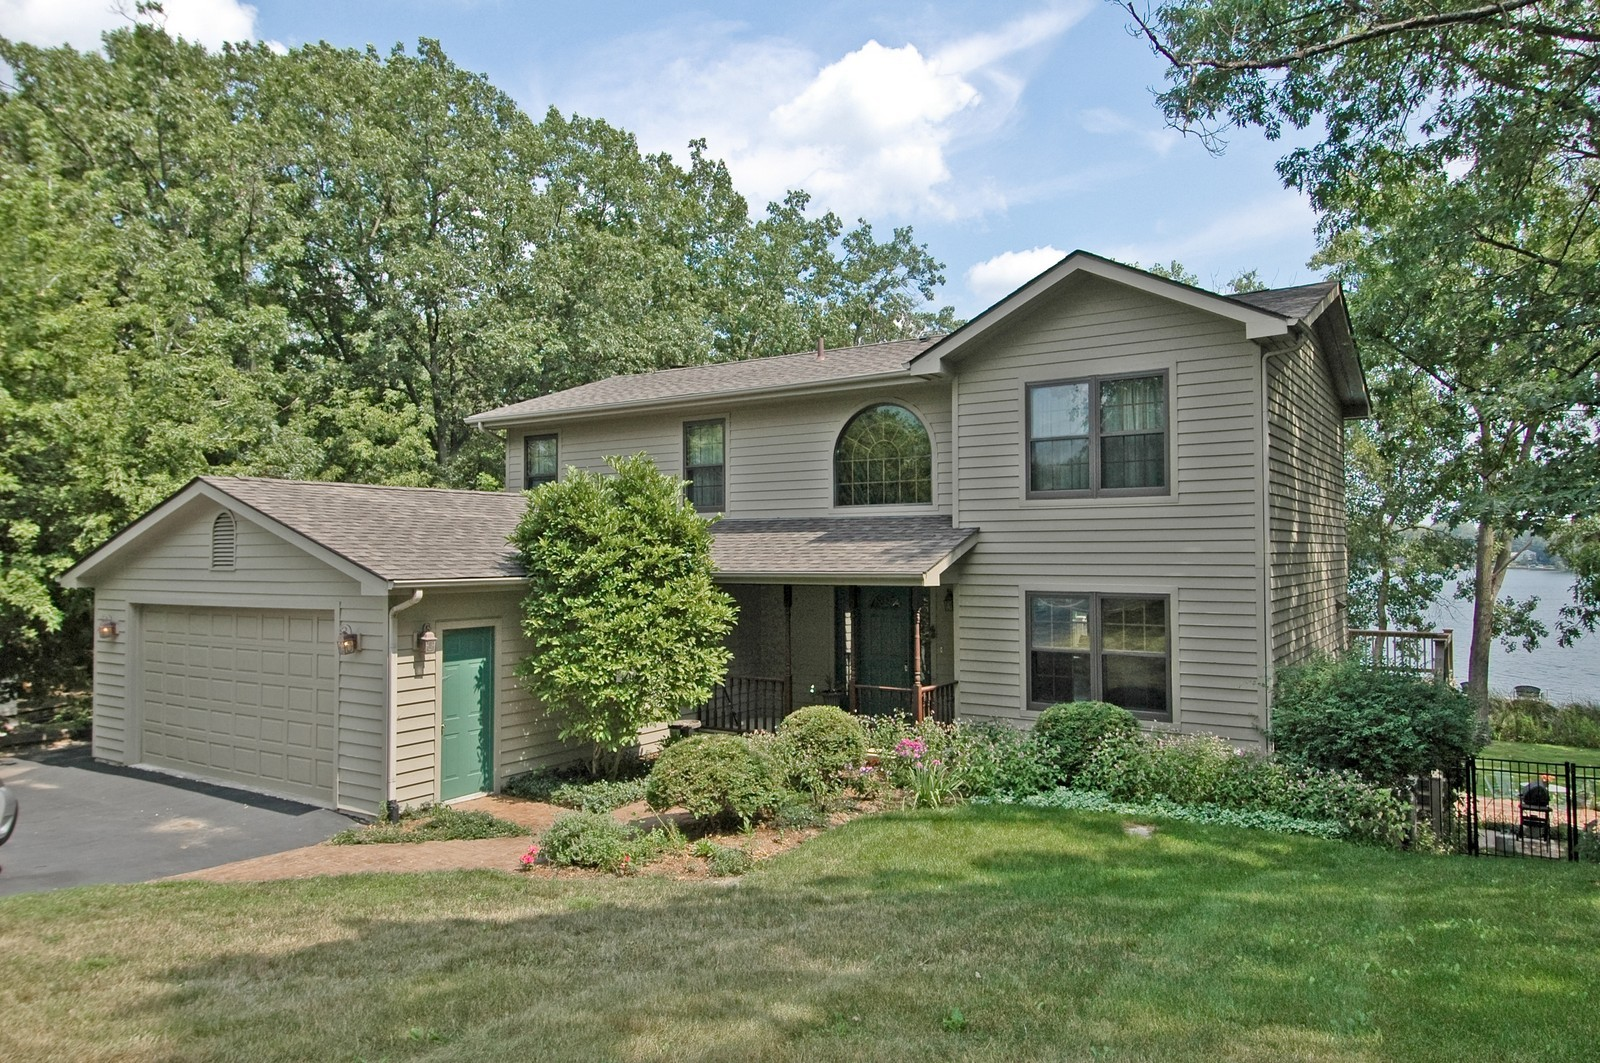 Real Estate Photography - 6106 S Kilkenny, Crystal Lake, IL, 60014 - Front View